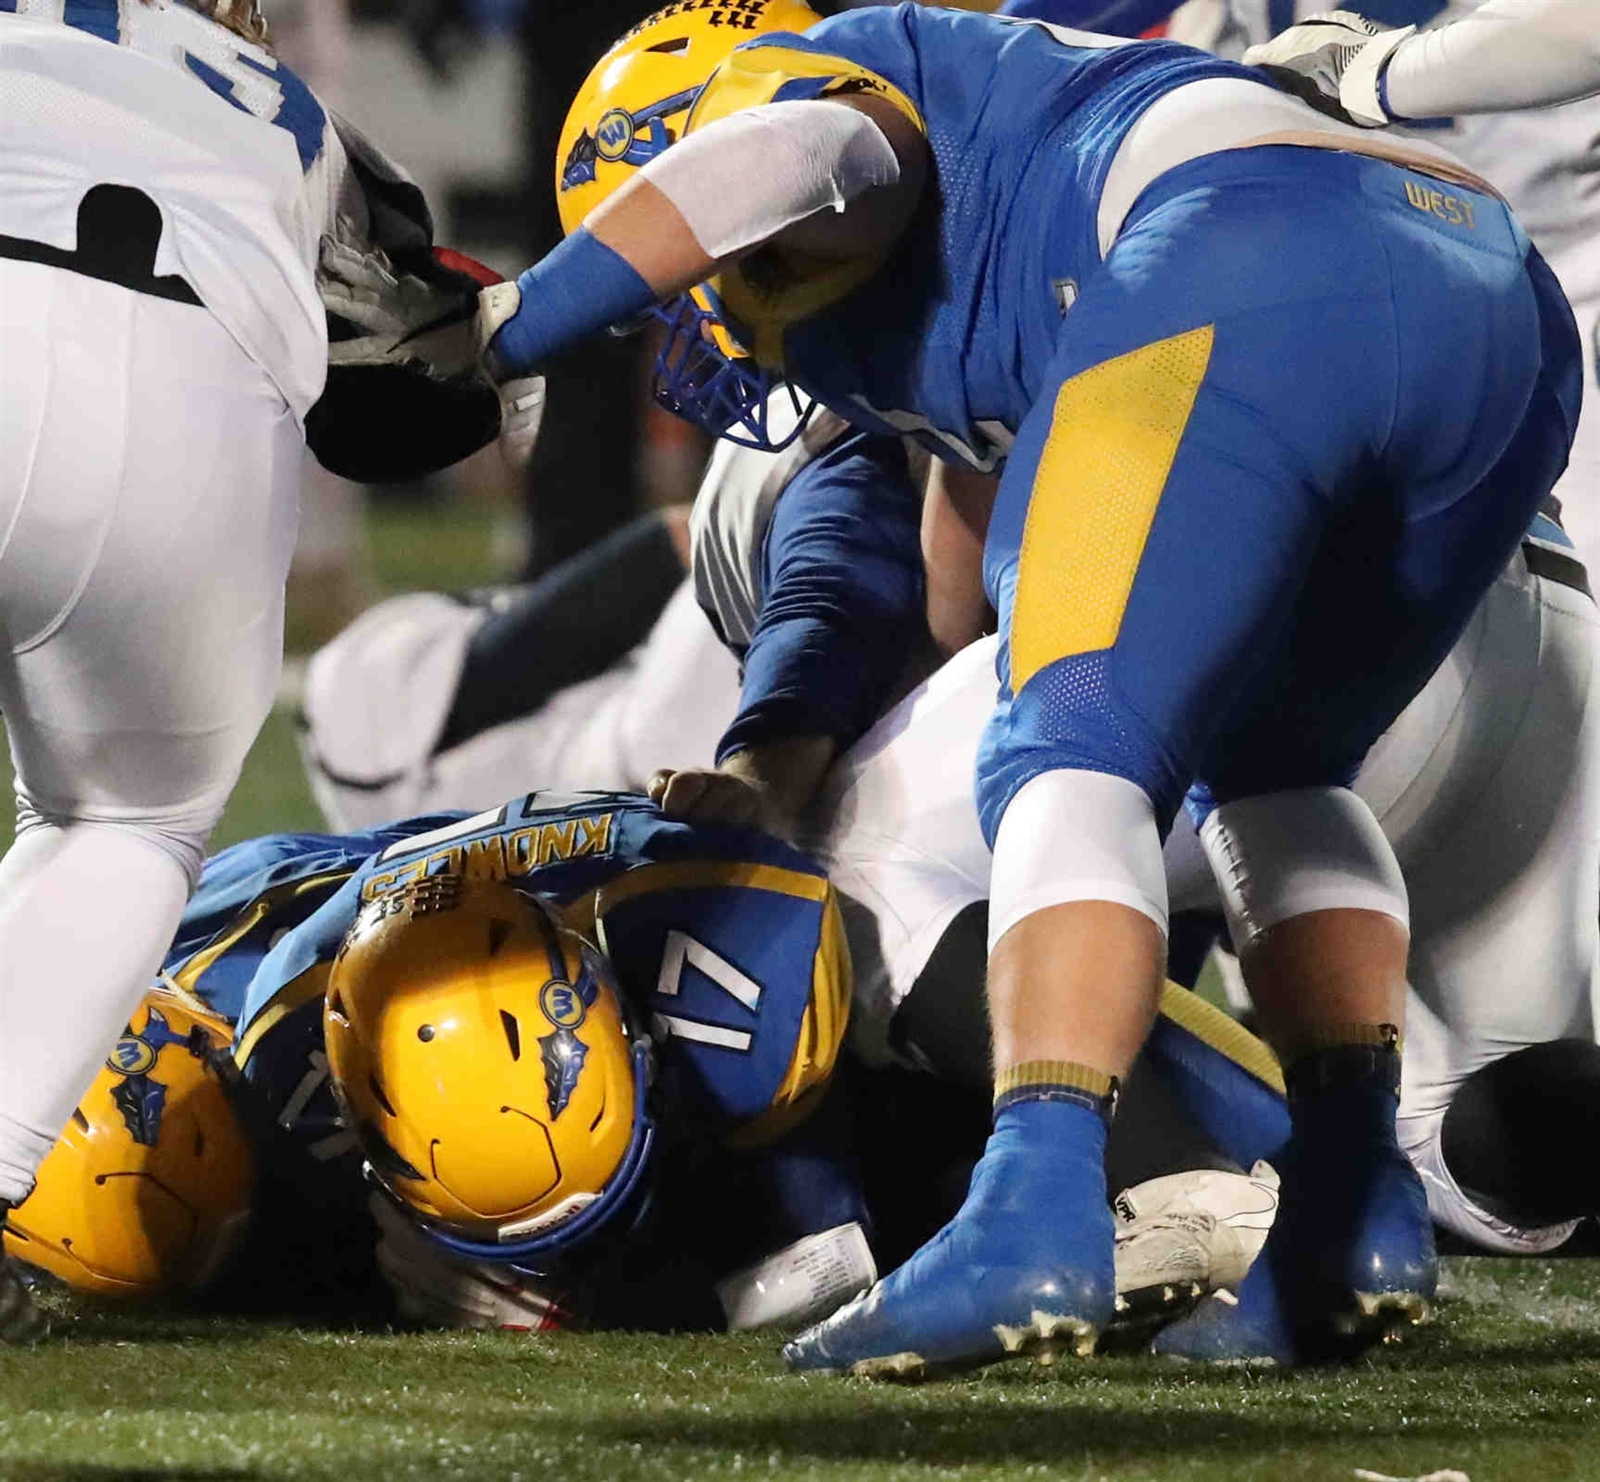 West Seneca's Nick Knowies recovers a fumble.